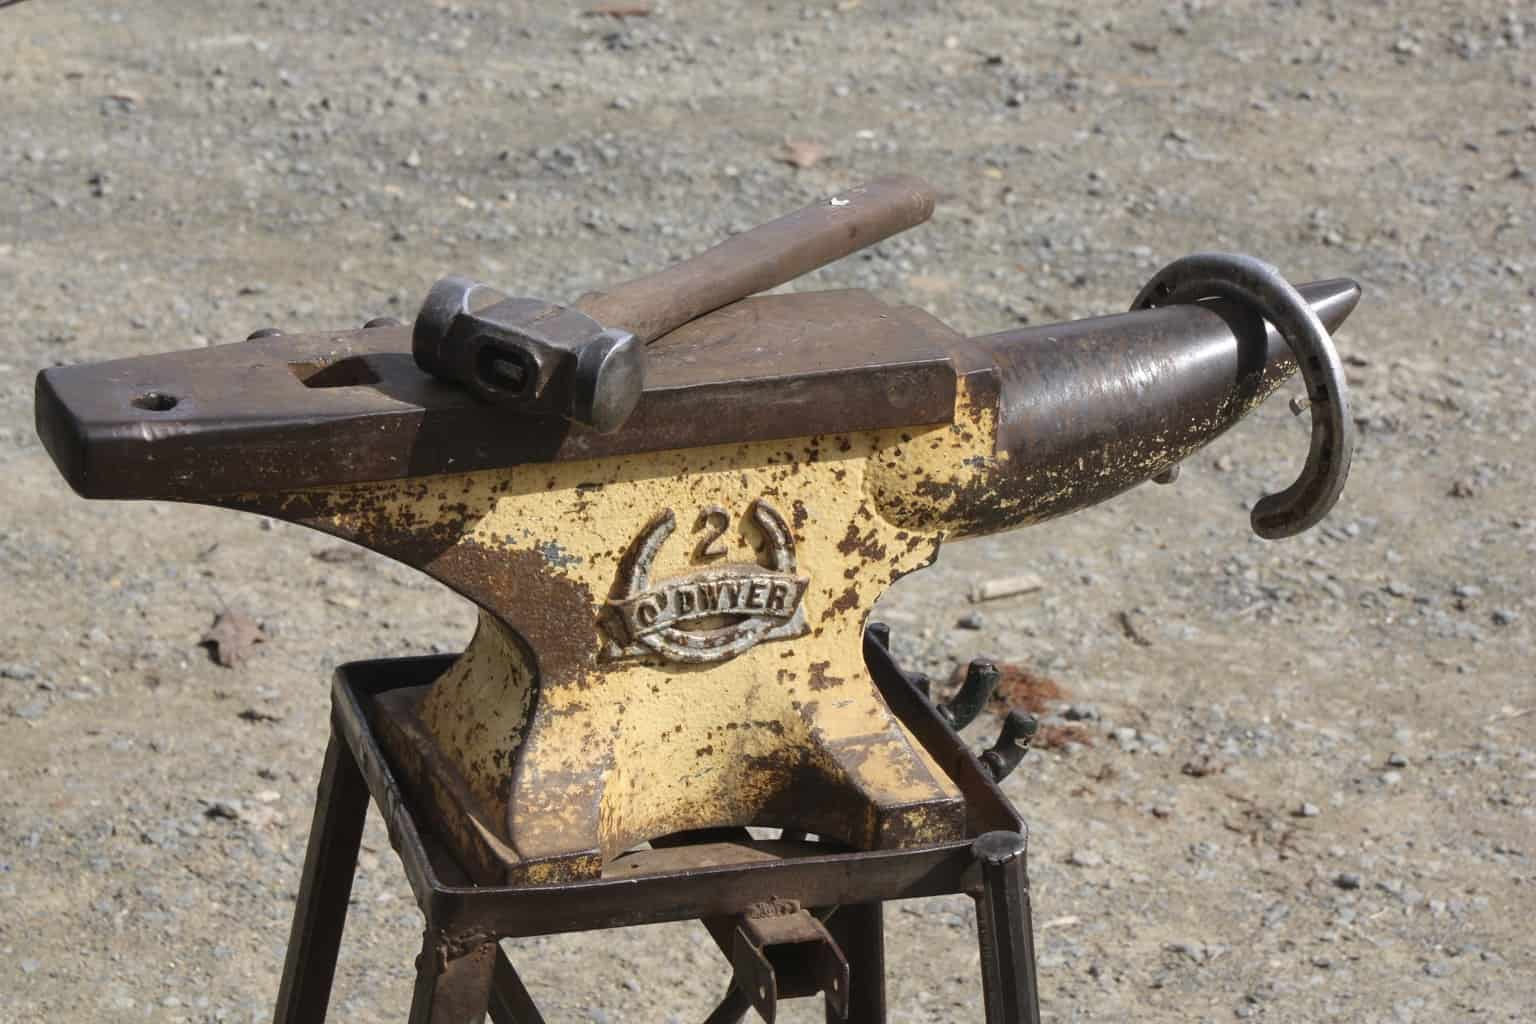 An old anvil with an hammer on top